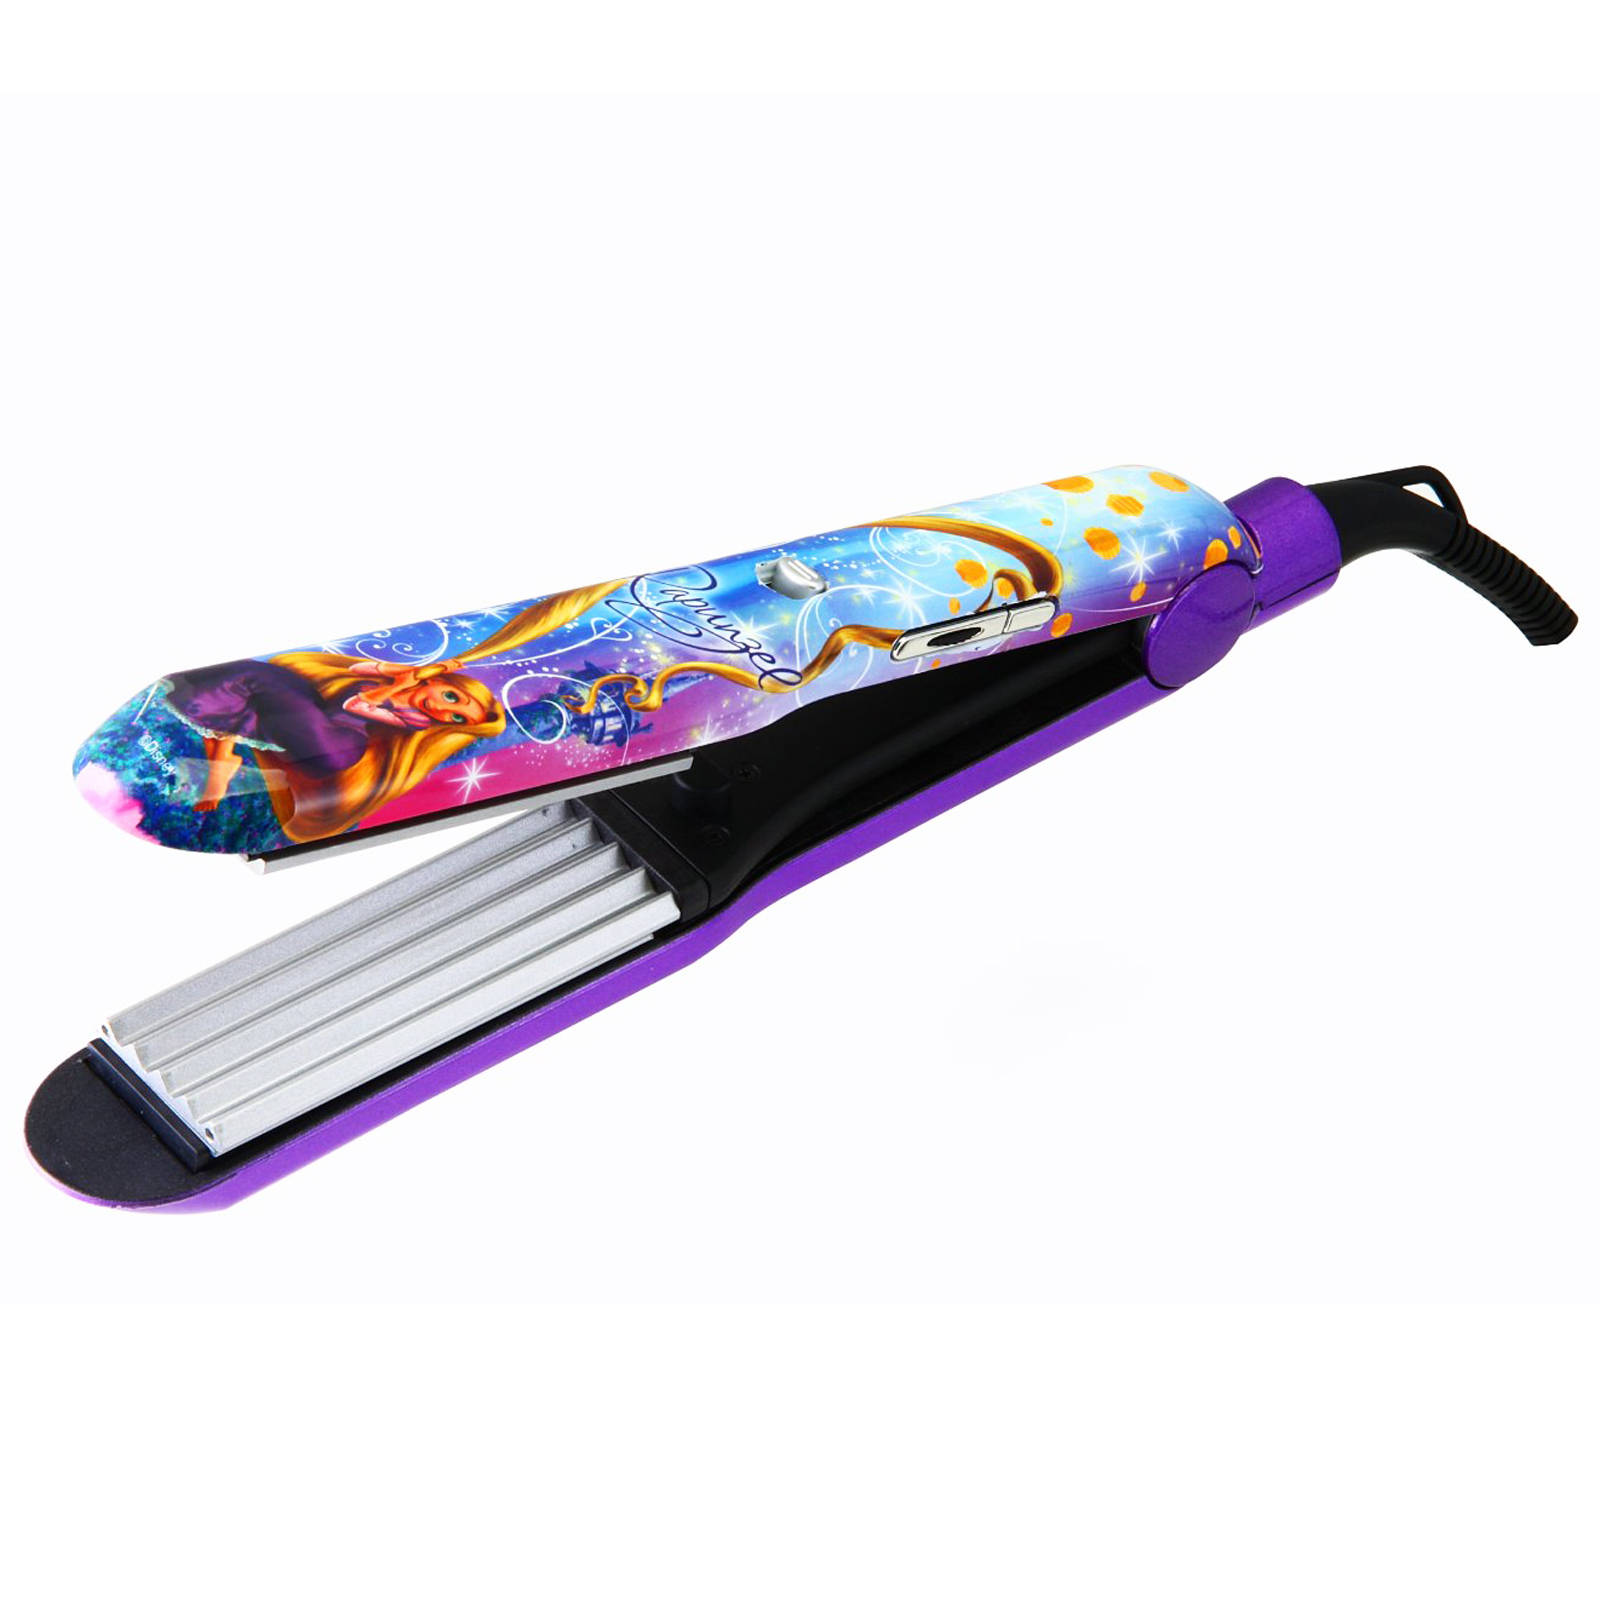 disney rapunzel iron waving styler ceramic hair crimper straightener ebay. Black Bedroom Furniture Sets. Home Design Ideas